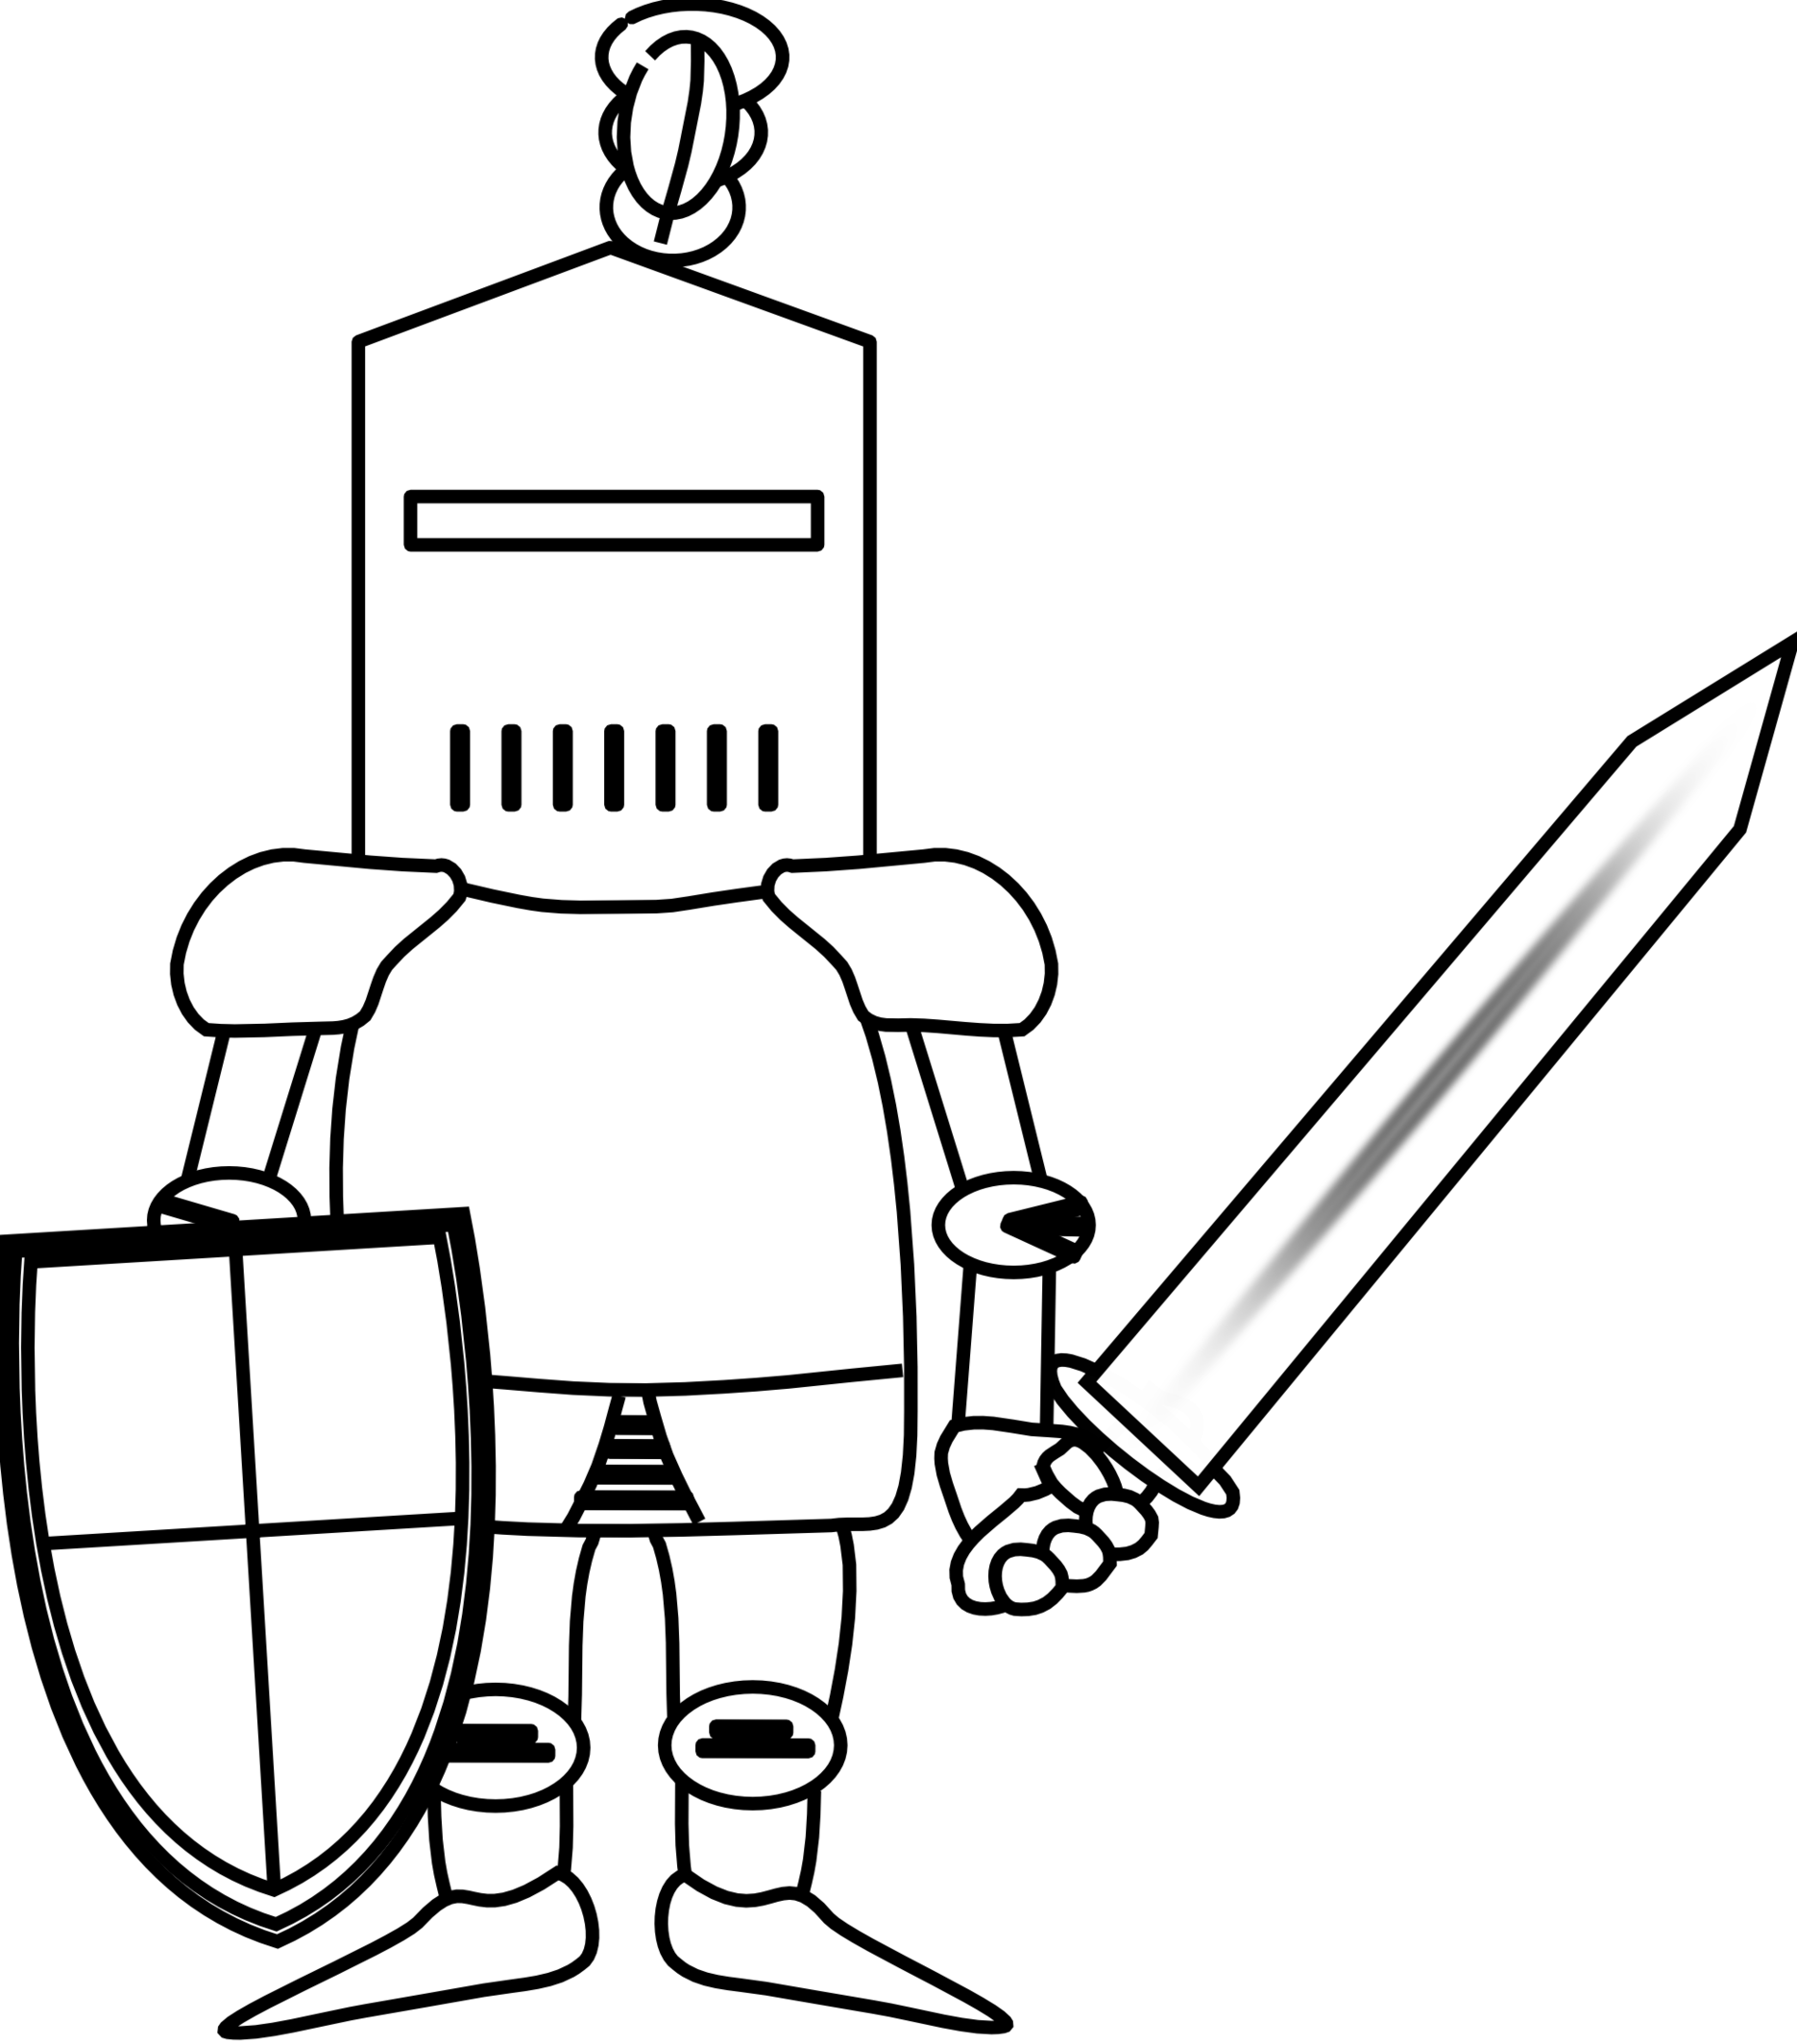 Clipart ritter royalty free download Knight Clipart & Knight Clip Art Images - ClipartALL.com royalty free download